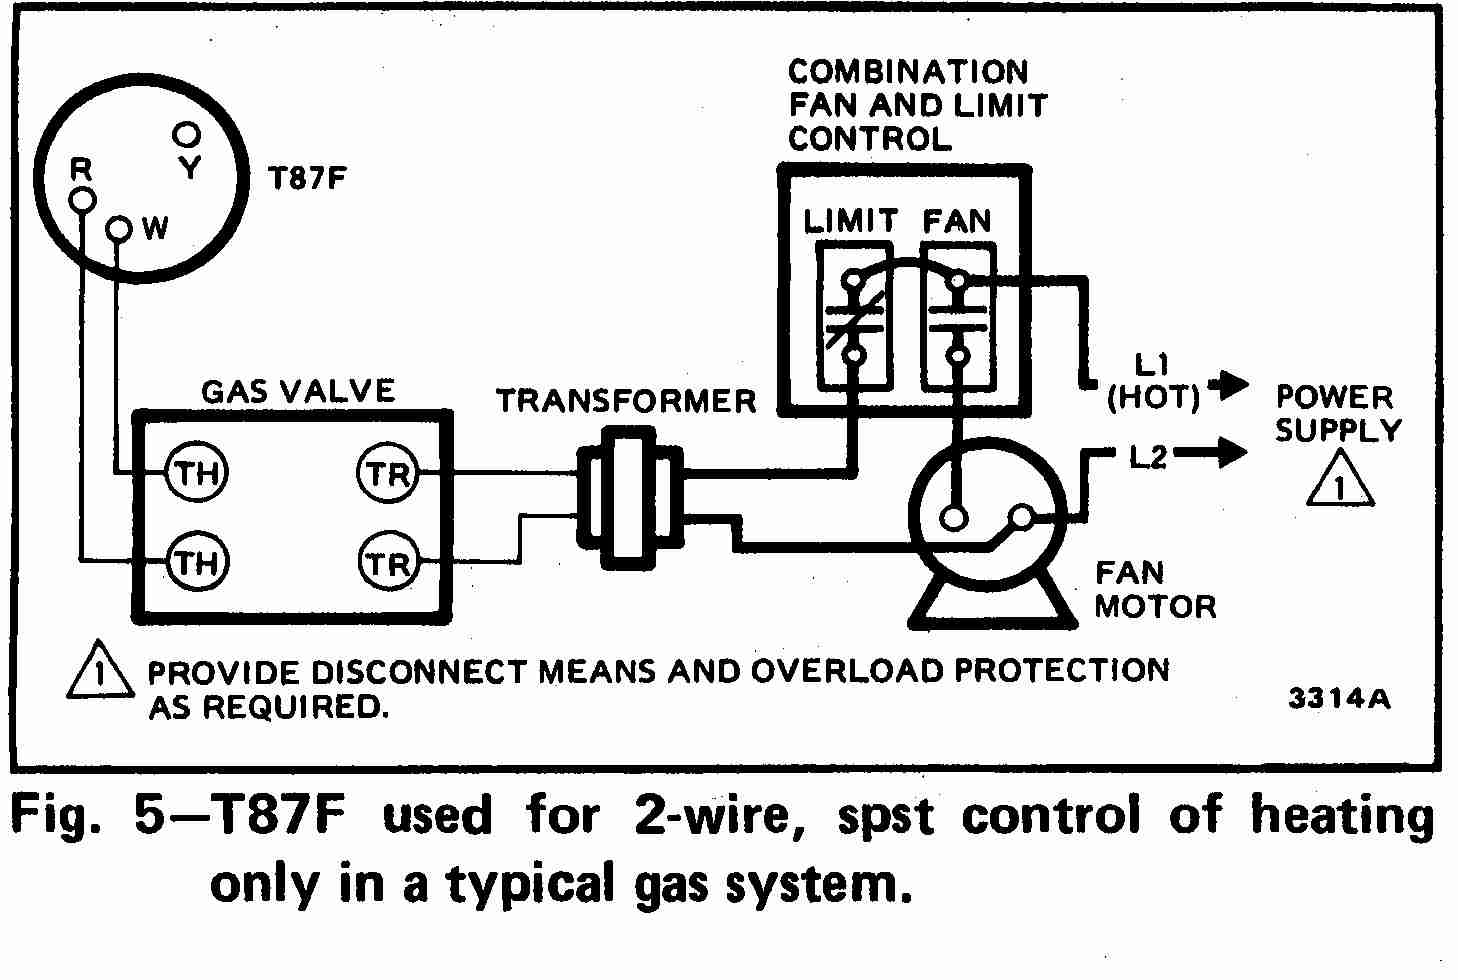 Floor Heat Piping Diagram Together With Storage Heater Wiring Zone Valve Installation Instructions Guide To Heating Flair 2 Wire Thermosat